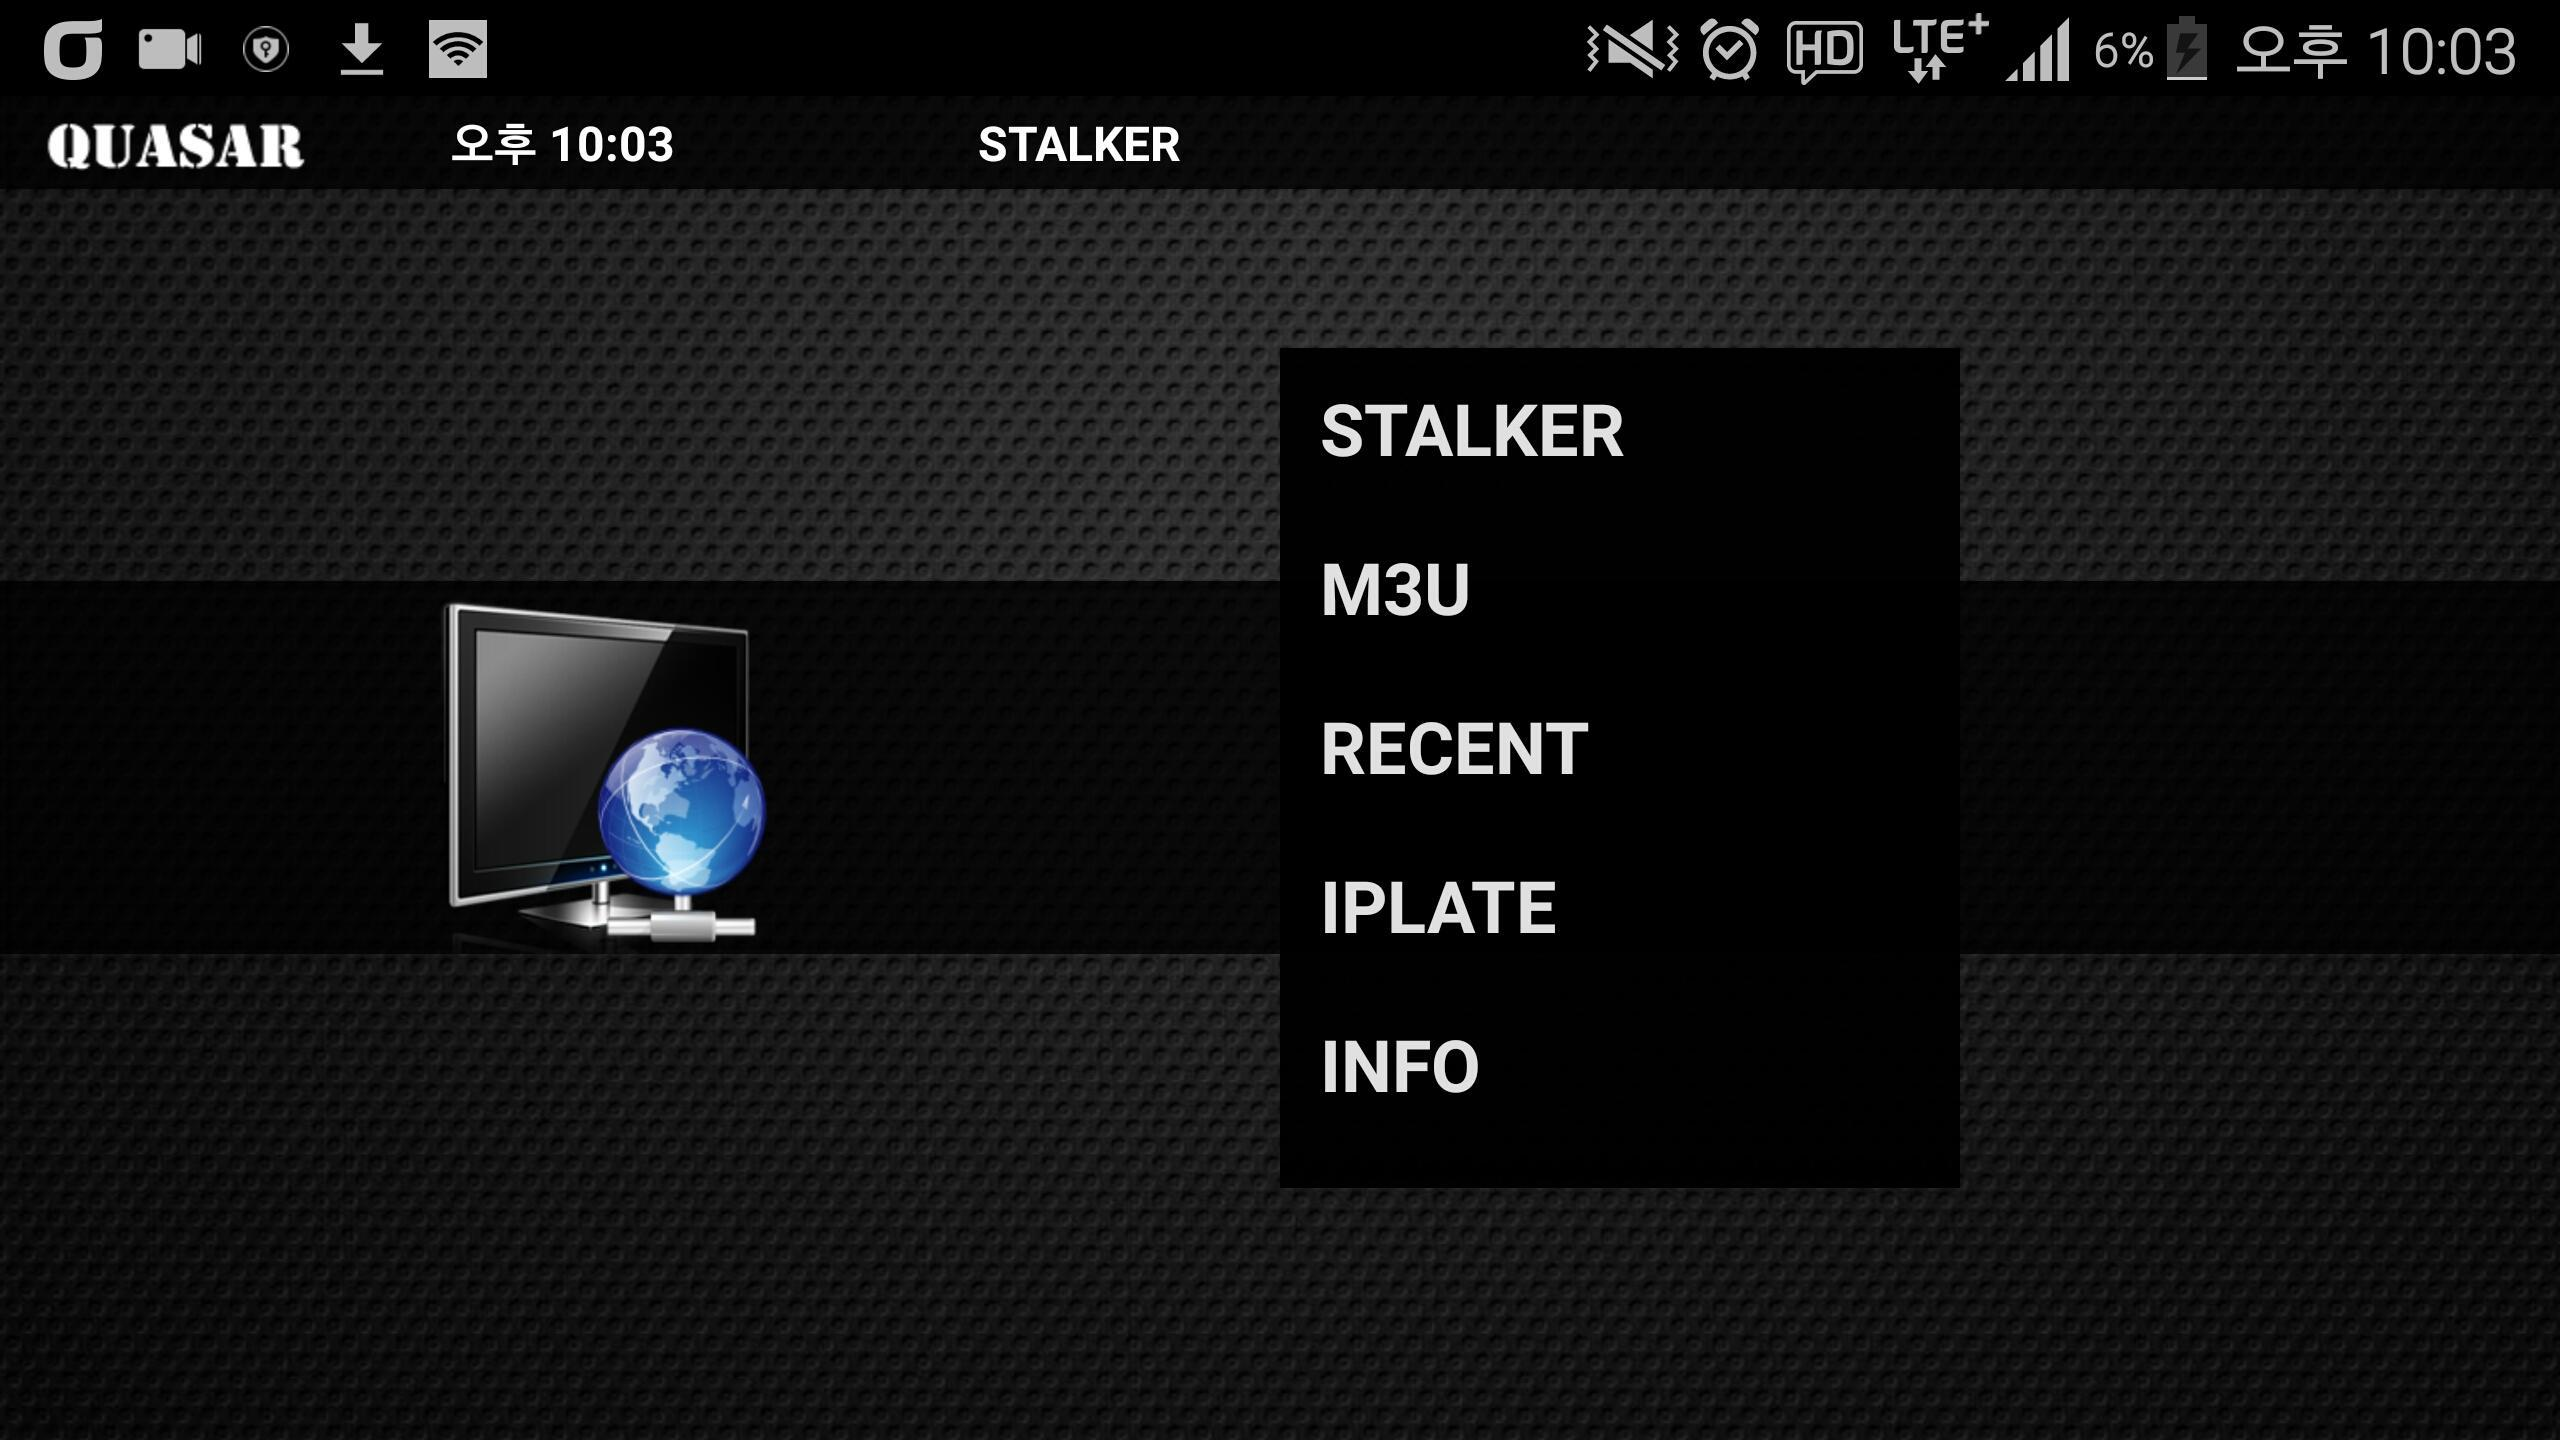 Quasar IPTV - For Stalker, Xtream and M3U for Android - APK